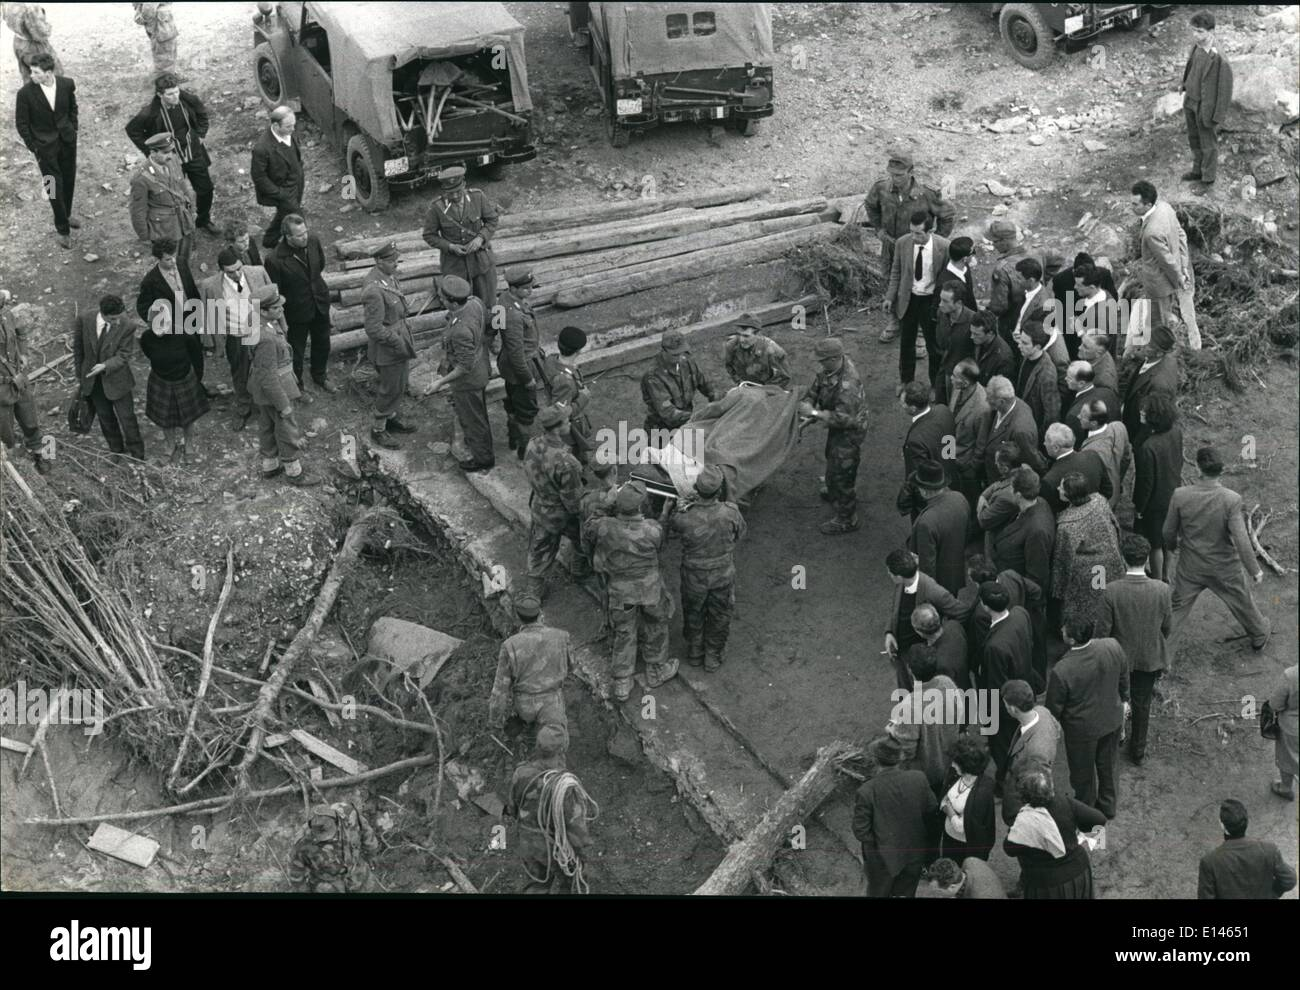 Apr. 16, 2012 - The Tragedy Of The Vajont Dam Disaster.: Longarone, Italy  12 Oct, 1963 ''The Scene As Italian Soldiers Are Carrying A Recuperated Body Of A Victim On A Stretcher, Civilians, Desolated, Look On. - Stock Image